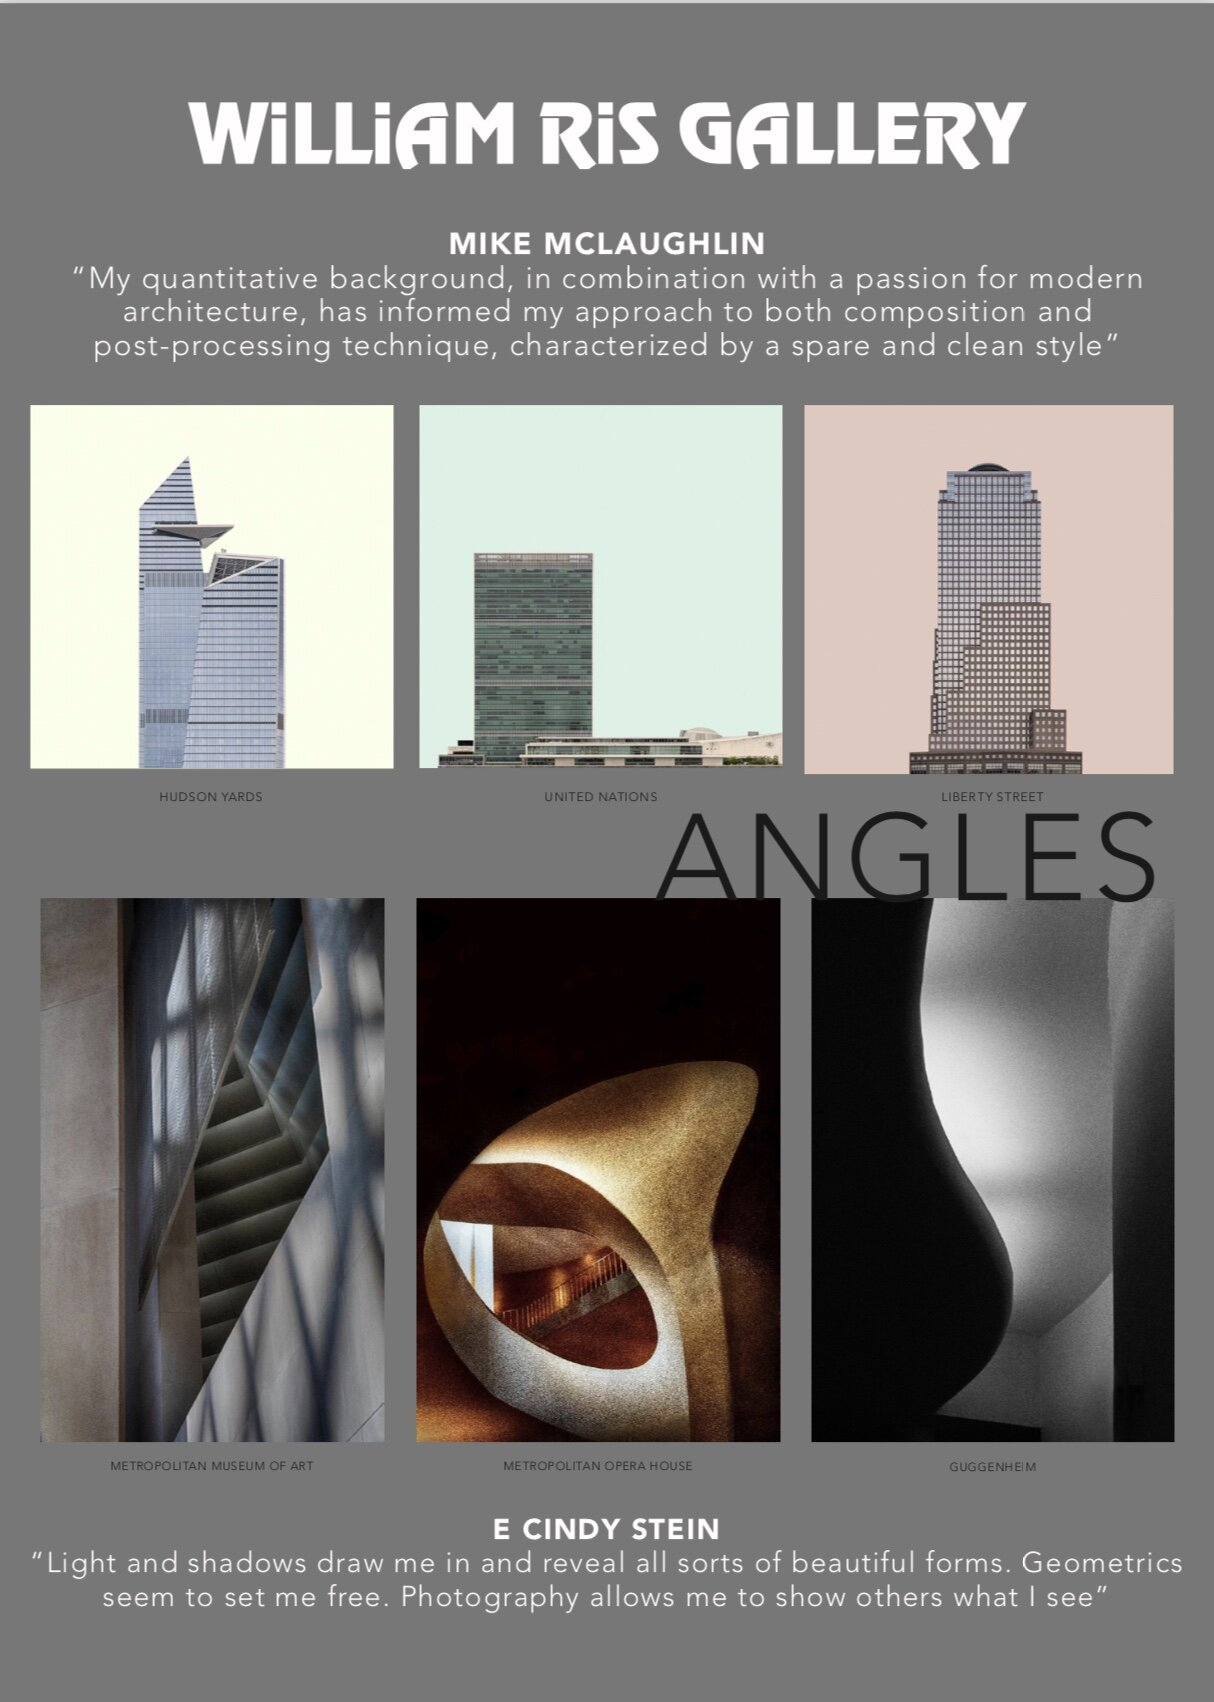 "Please join us on  Saturday, November 16th  for the opening reception of ANGLES. Works by photographers  E. Cindy Stein  and  Mike McLaughlin  will be highlighted with a focus on NYC's Architecture and Interiors. Stein and McLaughlin's love for Manhattan stirs this collection as each put their own unique spin on interiors and exteriors of iconic landmarks. Both artists capture the energy and essence of the city. E. Cindy says, ""Light and shadows draw me in and reveal all sorts of beautiful forms. Geometrics seem to set me free. Photography allows me to show others what I see.""   In Mike McLaughlin's words: ""My quantitative background, in combination with a passion for modern architecture, has informed my approach to both composition and post-processing technique, characterized by a spare and clean style.""  The exhibit opens with a reception on Saturday, November 16, 4-7pm and runs through December 29th.  An artists' talk is planned for Saturday, December 7th, 11am -1pm."